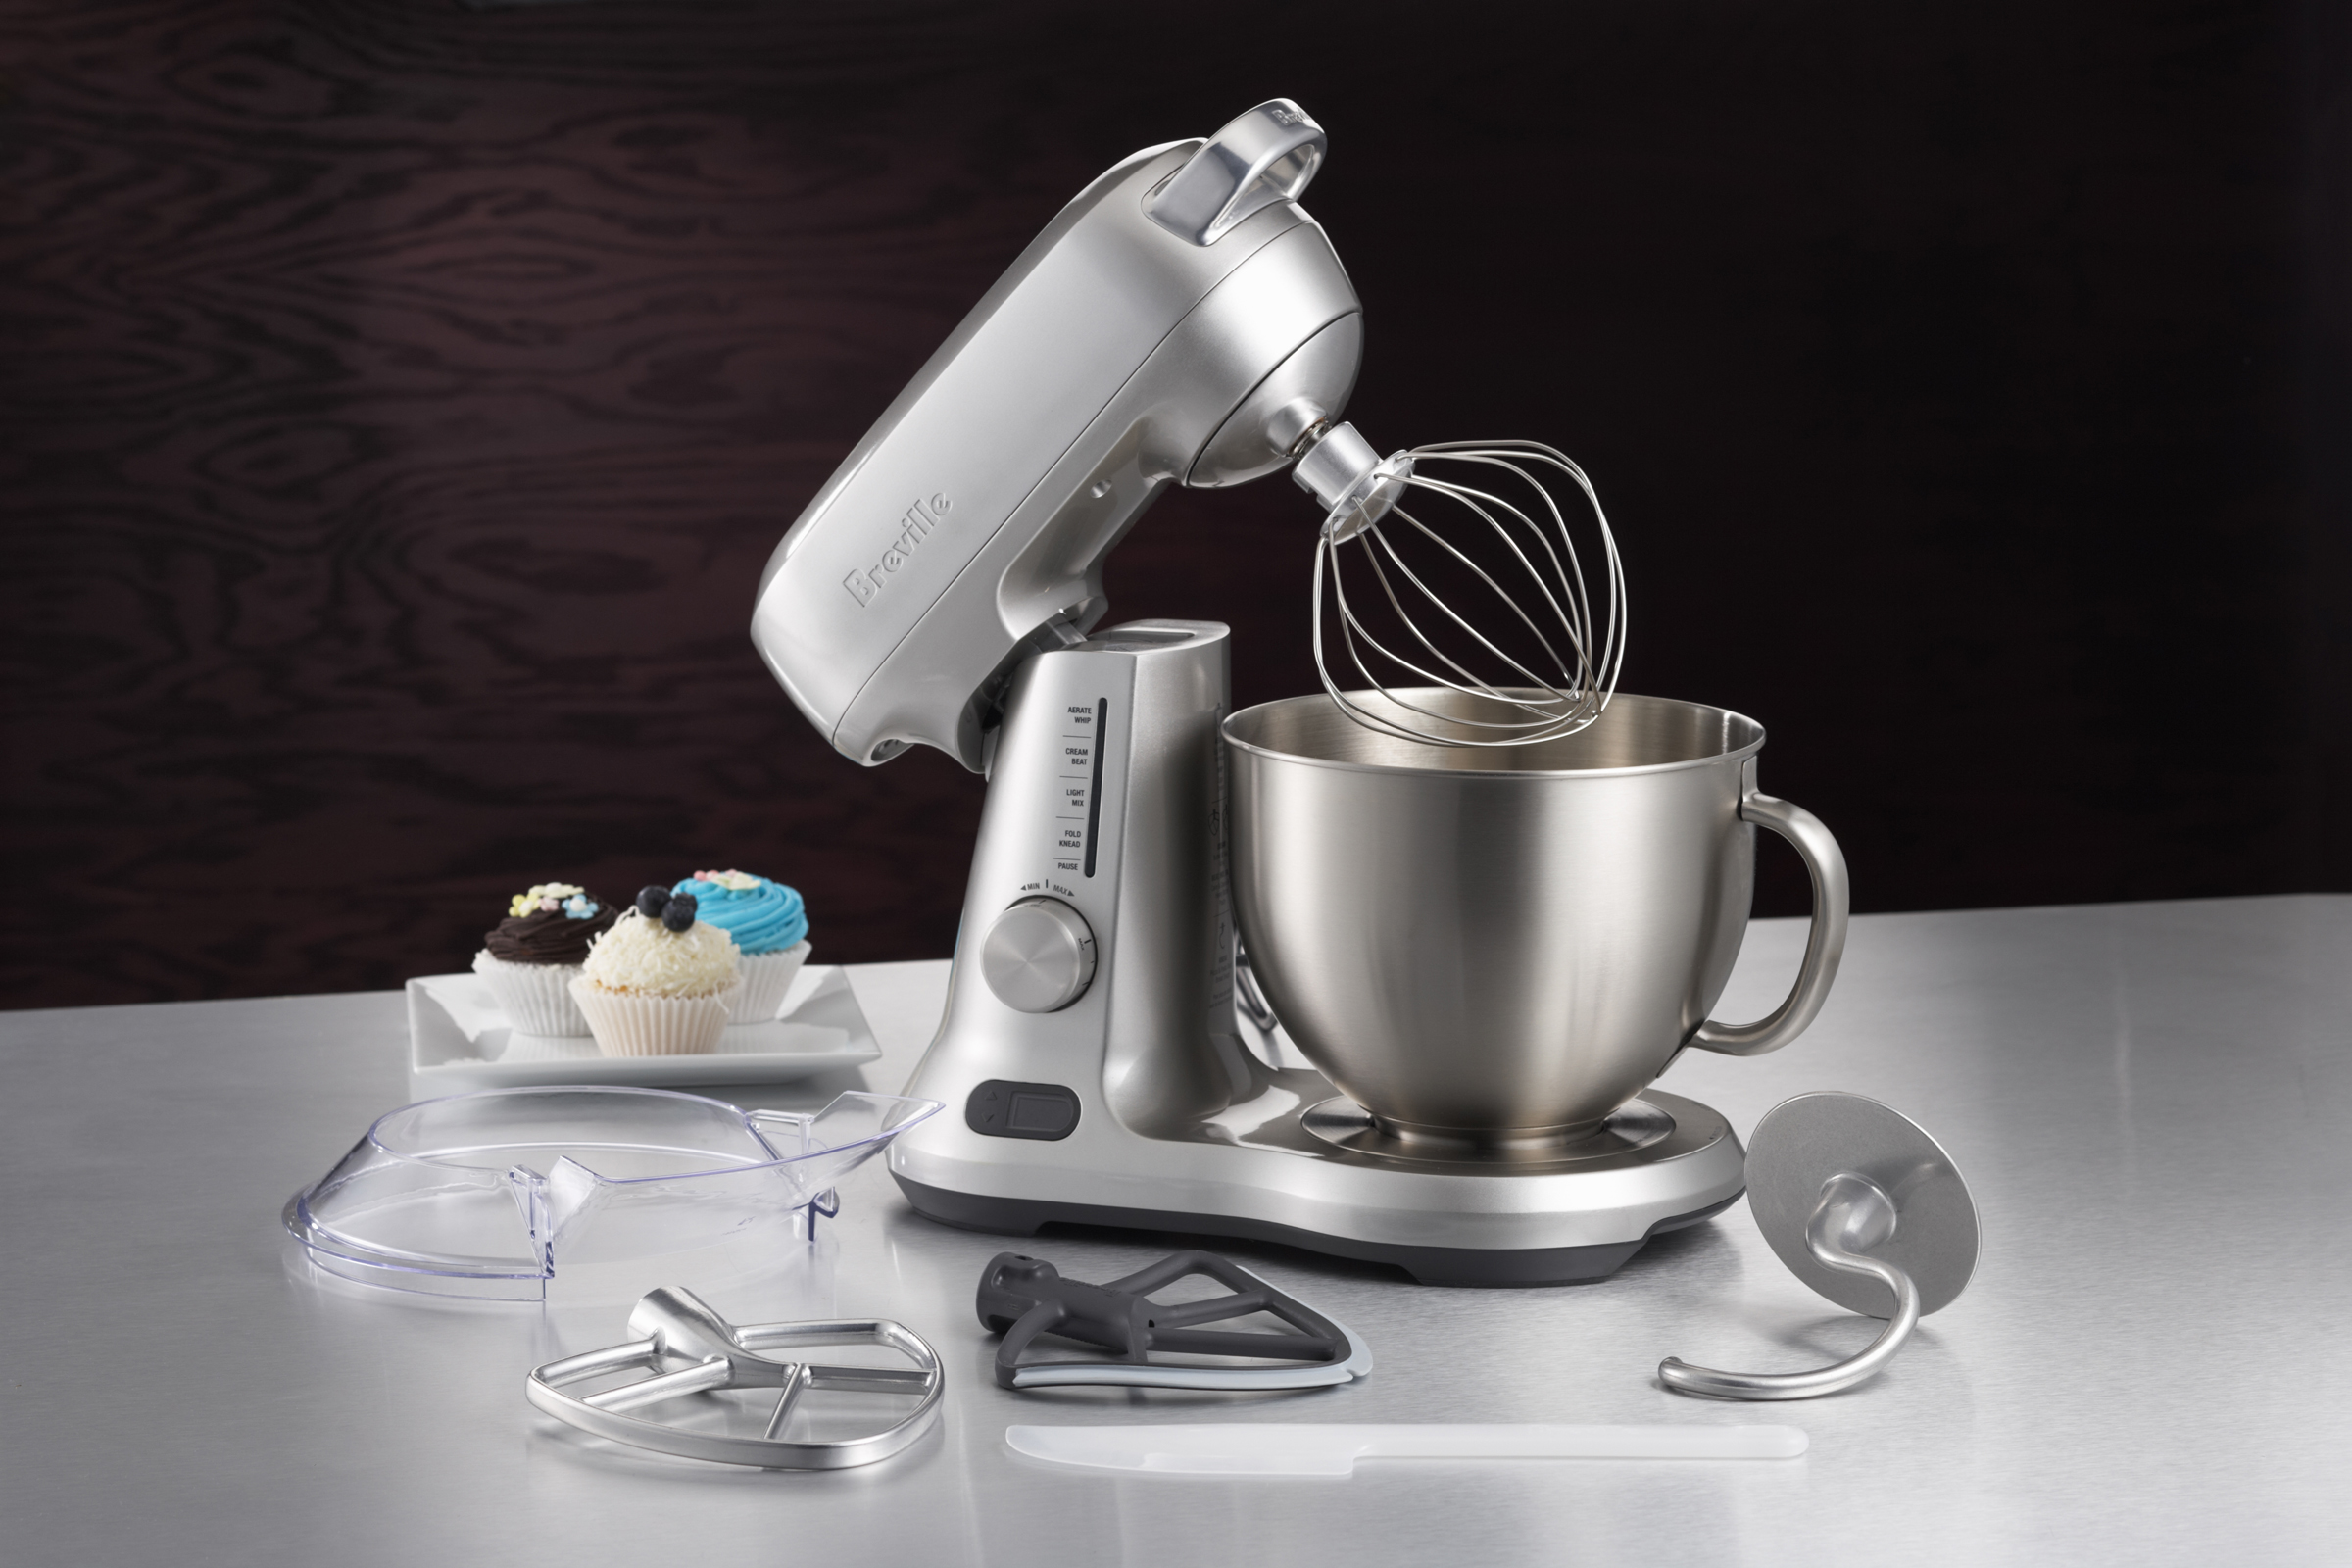 BEM800XL - Scraper Mixer Pro - Stand Mixer + Accessories